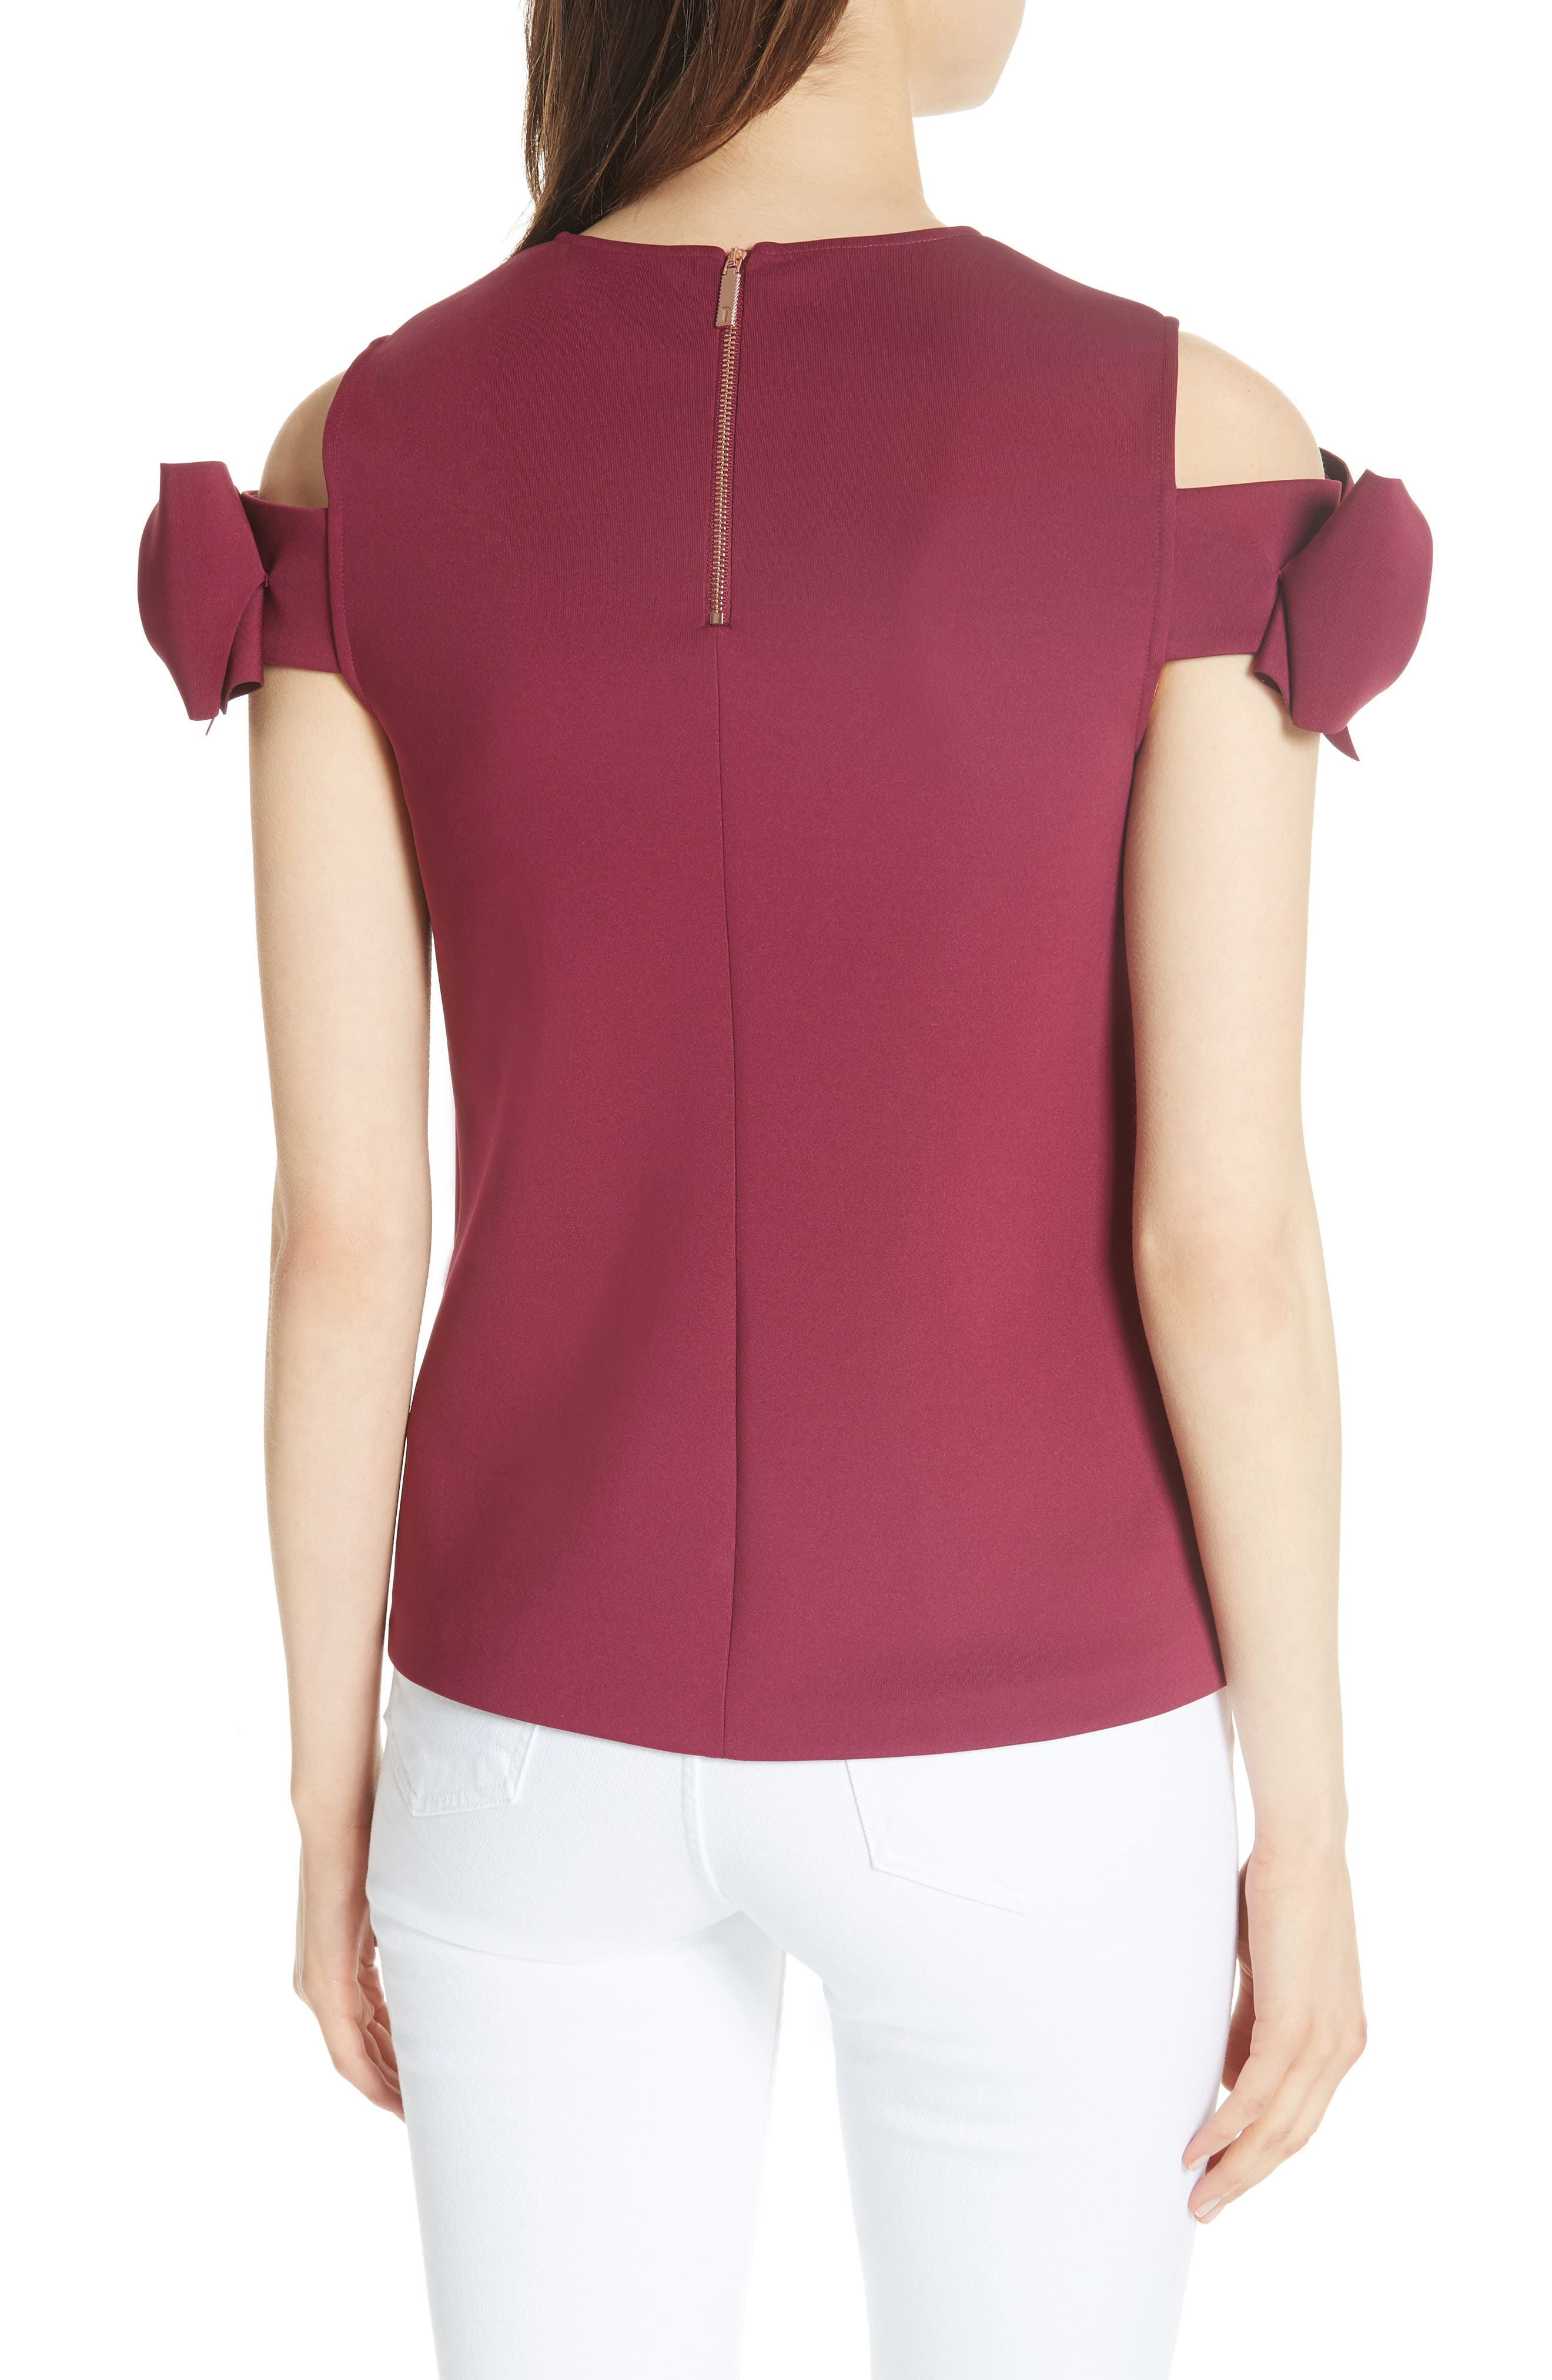 Mendoll Bow Sleeve Cold Shoulder Top,                             Alternate thumbnail 2, color,                             MAROON